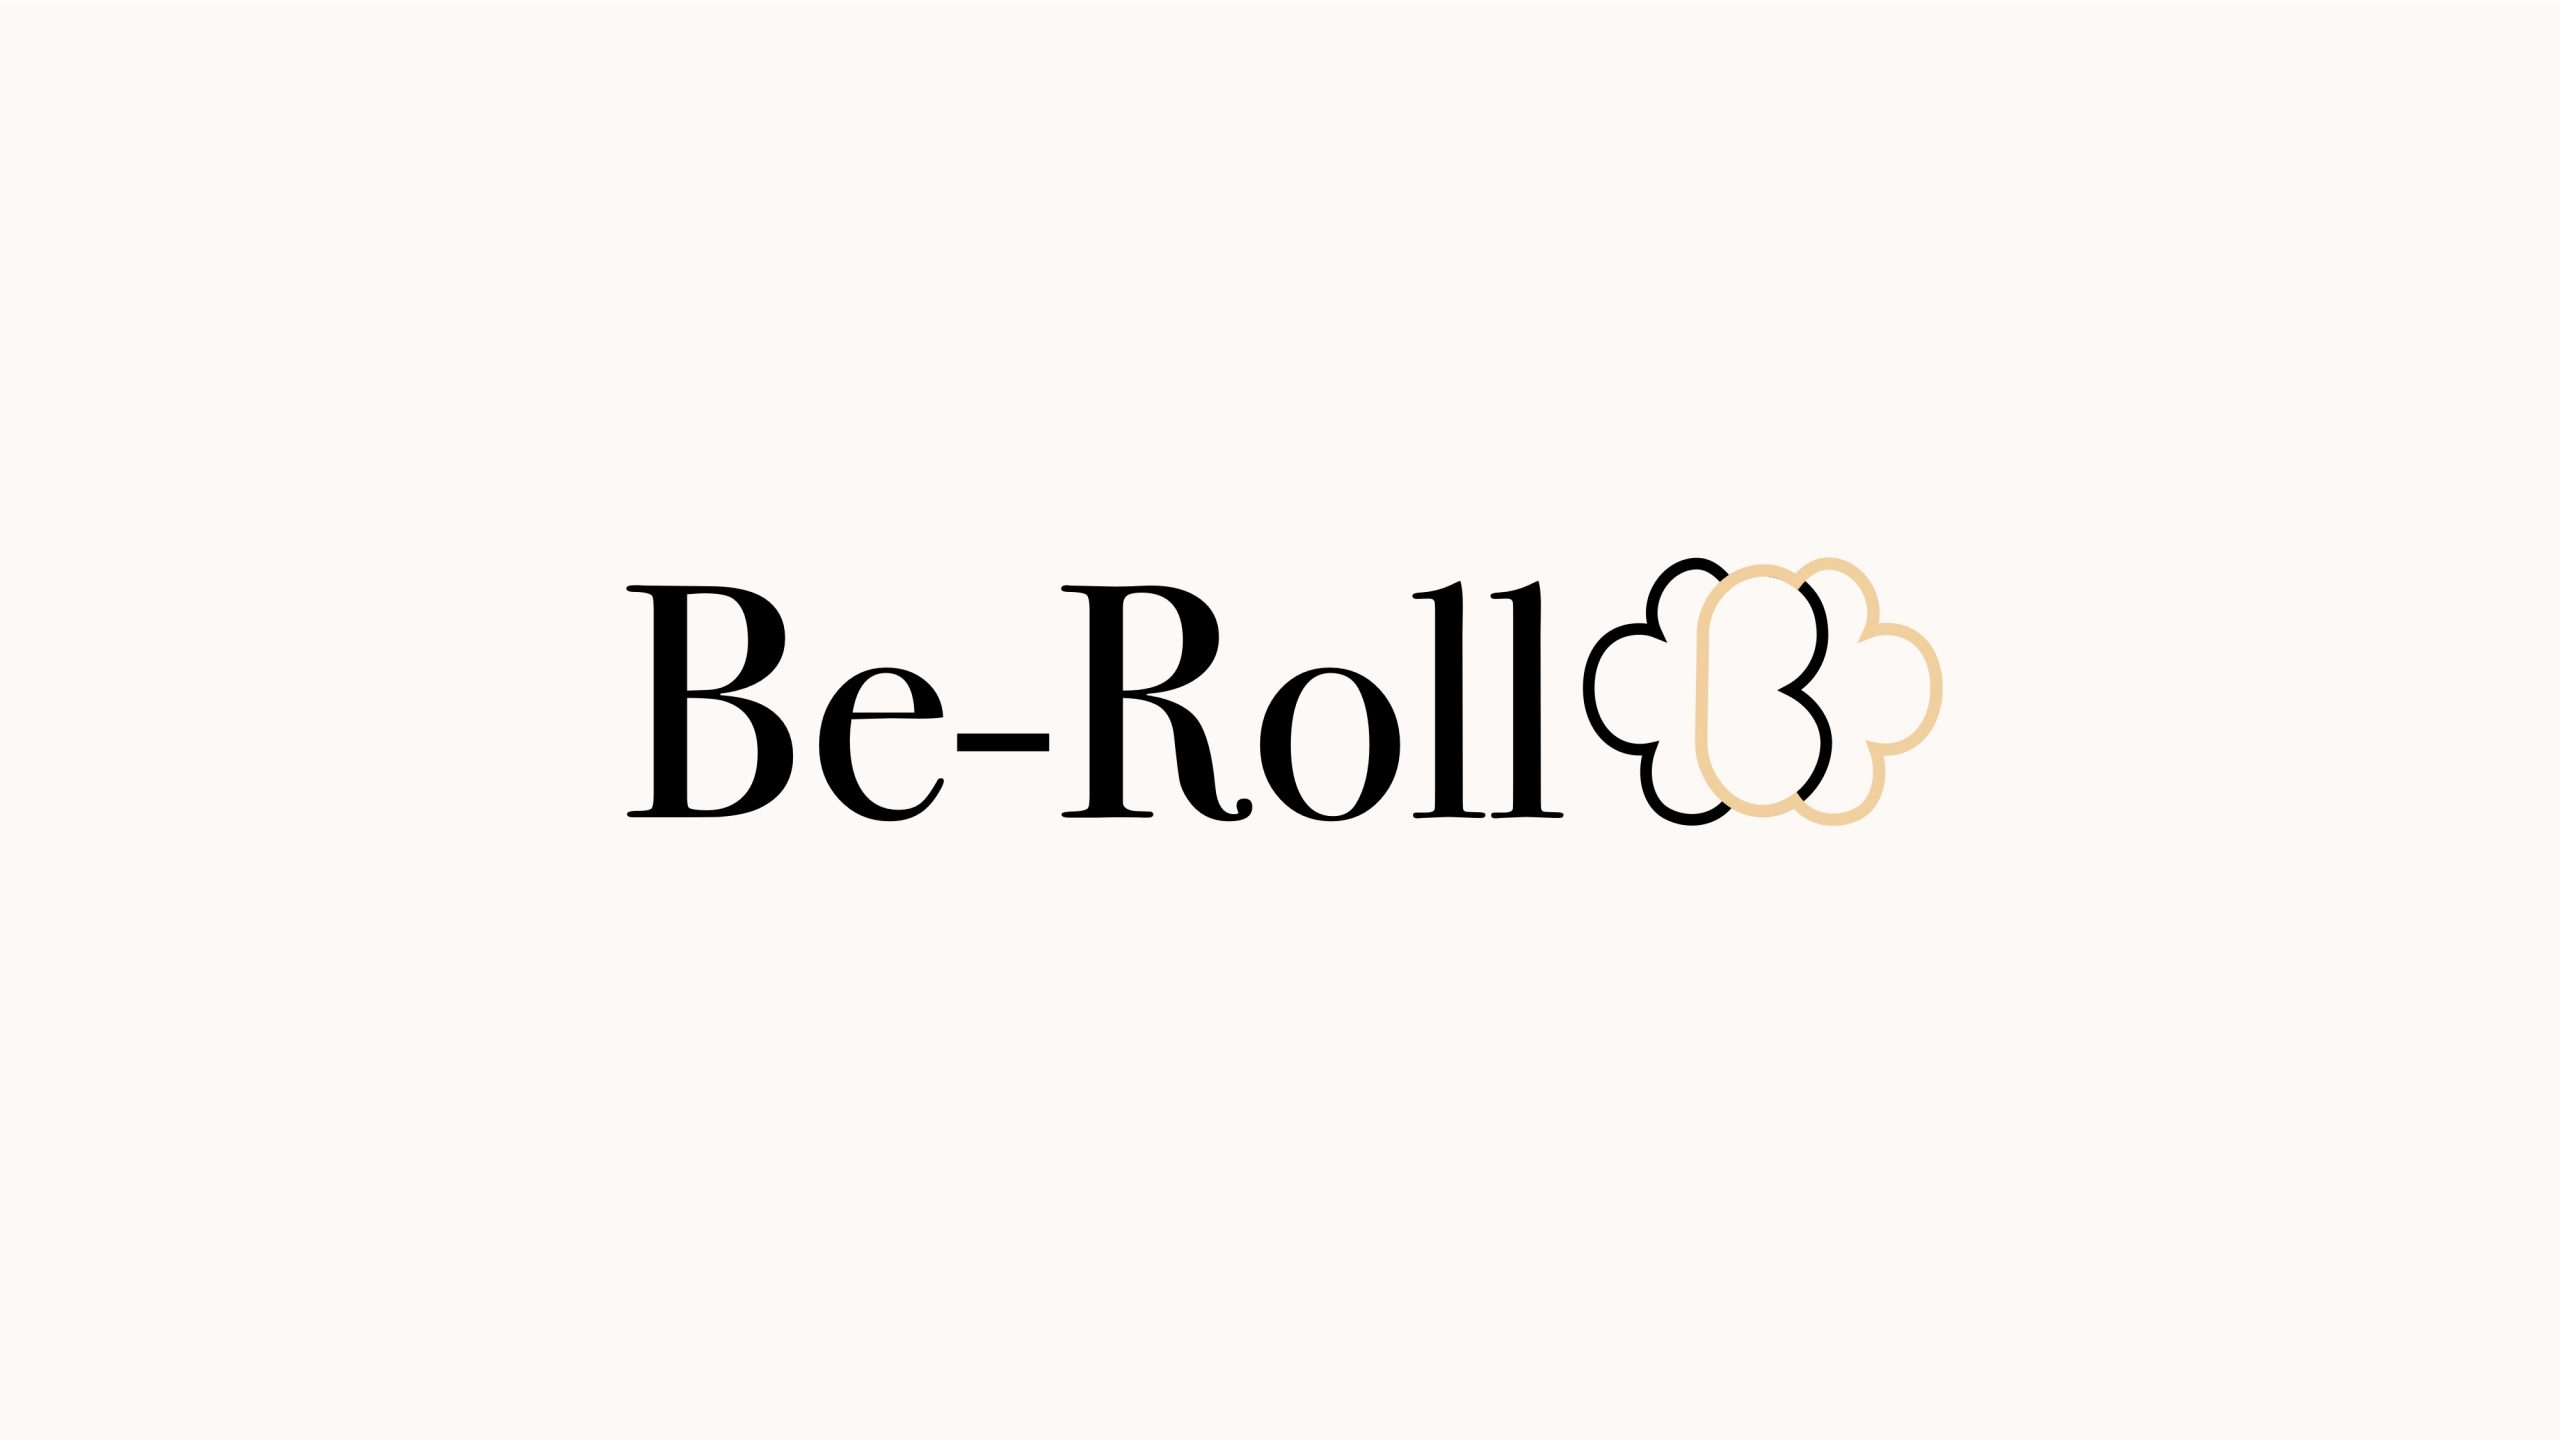 Be-Roll News Launches Unique, Weekly Newsletter Focused on Uplifting Current Events